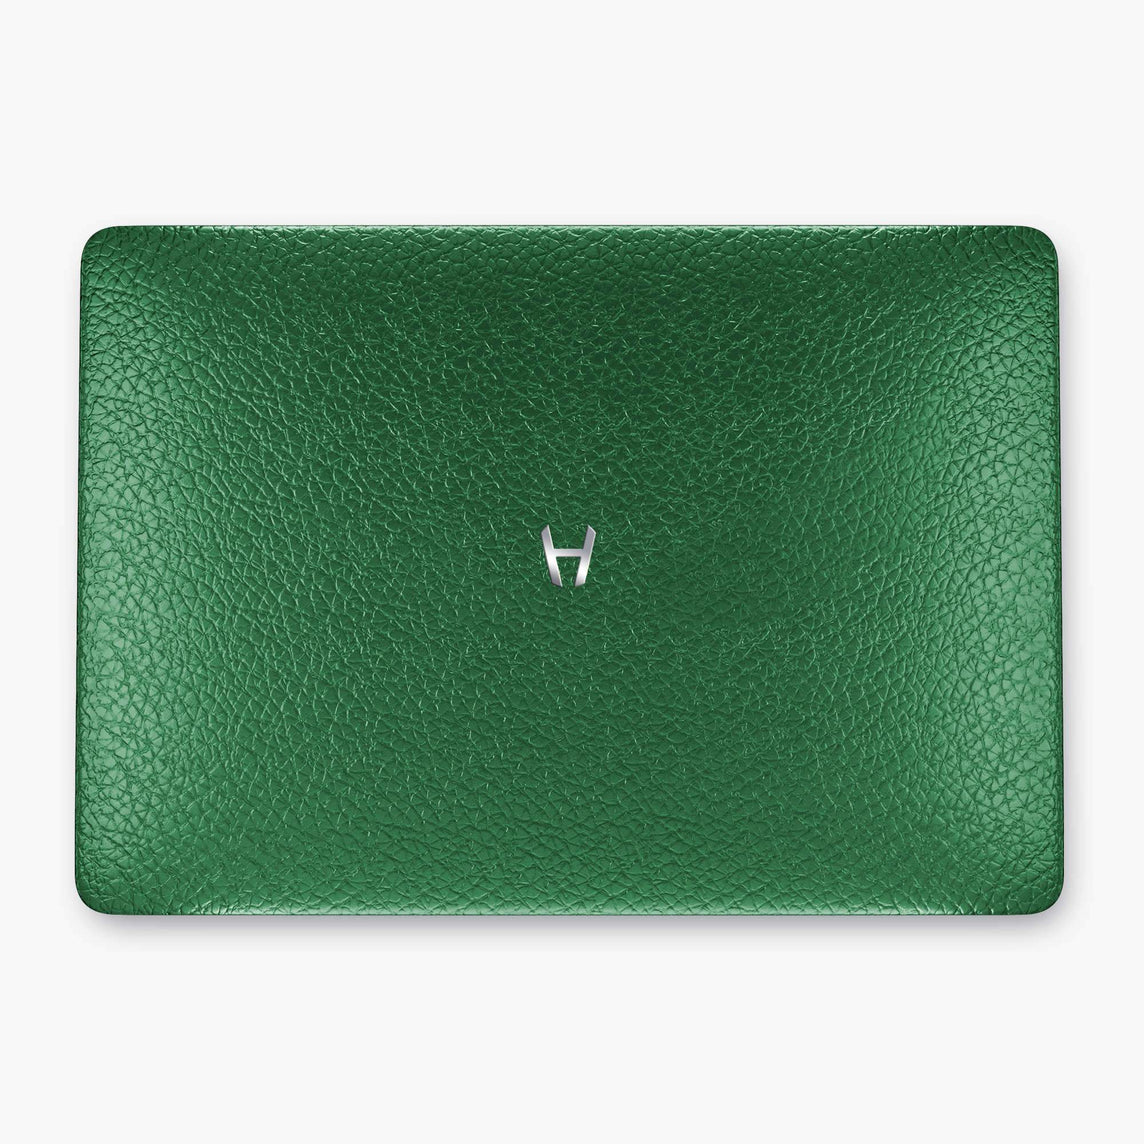 Calfskin Macbook Case Apple Mac Book Air | Green - Stainless Steel